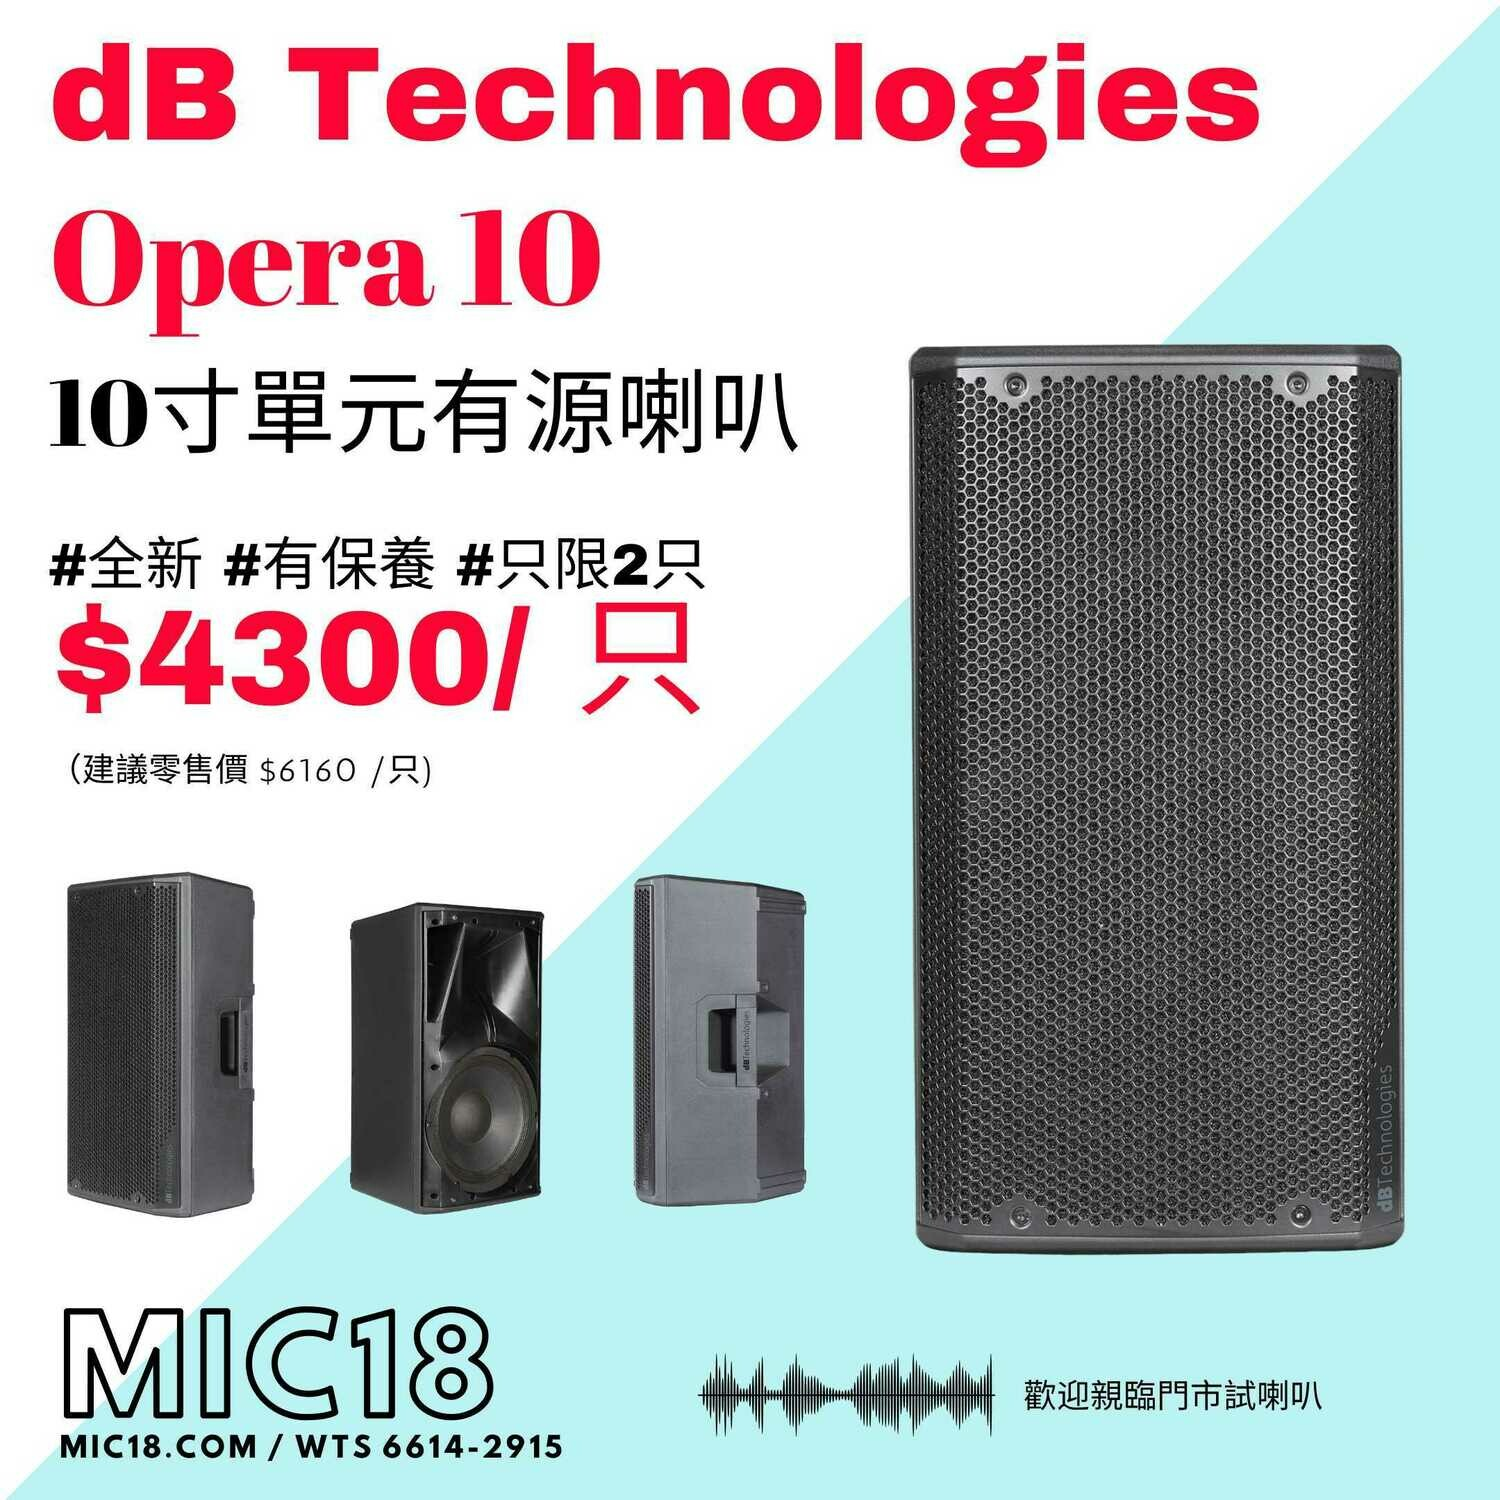 #最後2只 #清貨價 #全新 dB Technologies OPERA 10 active speaker (每只)